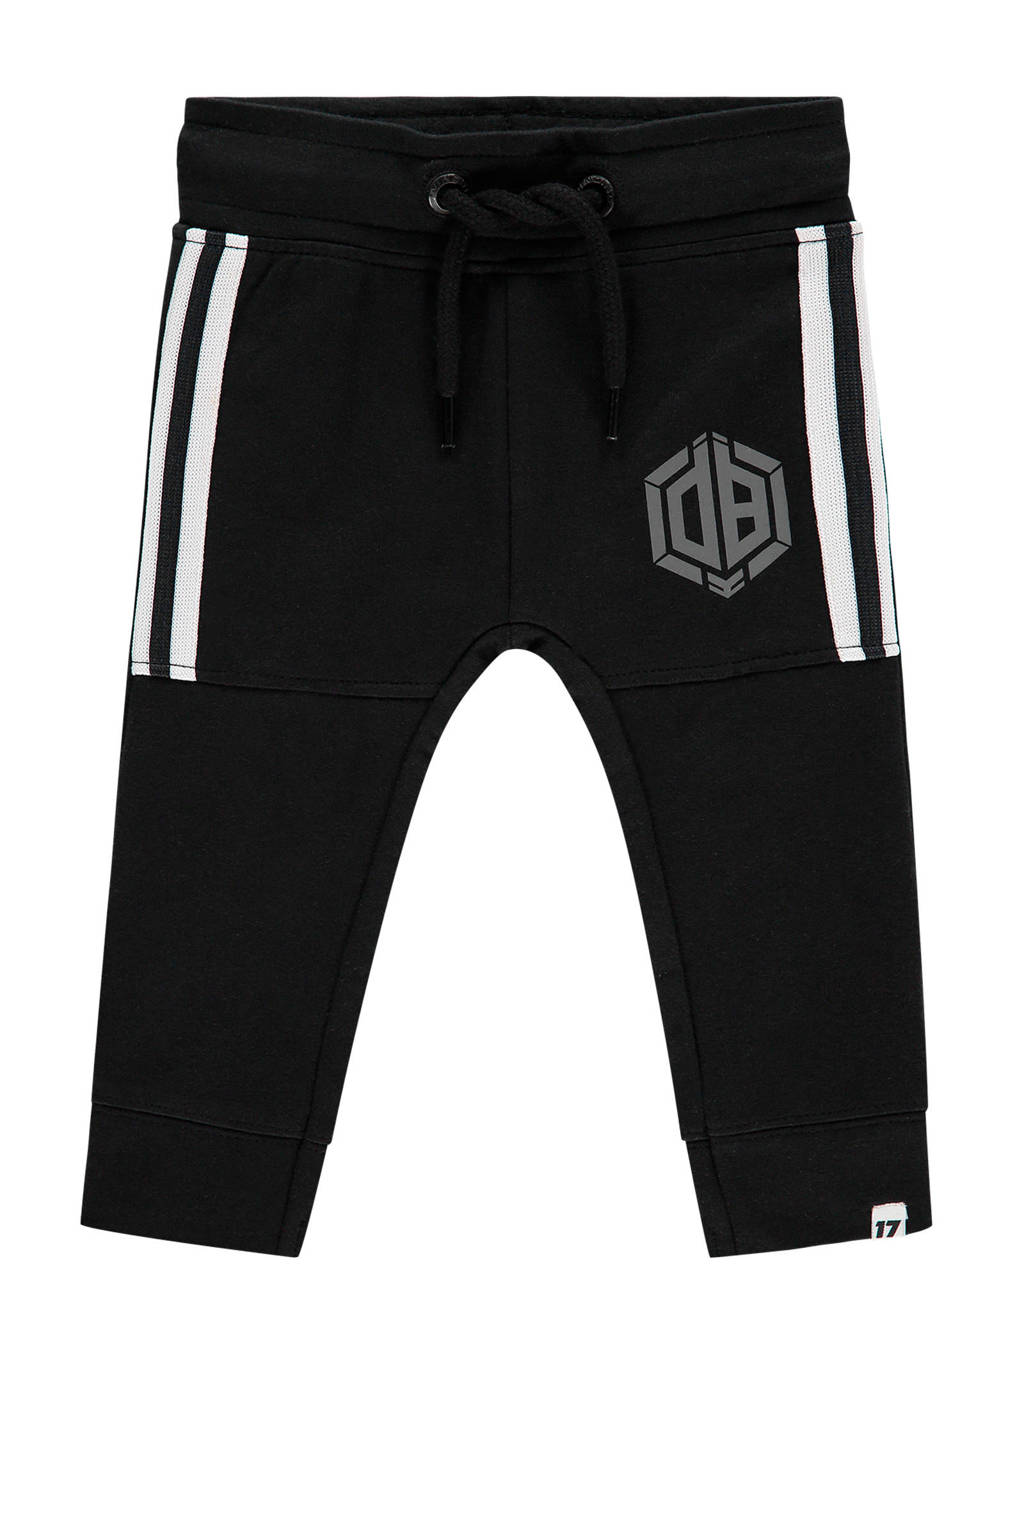 Vingino Daley Blind regular fit joggingbroek Sack met logo zwart/wit, Zwart/wit